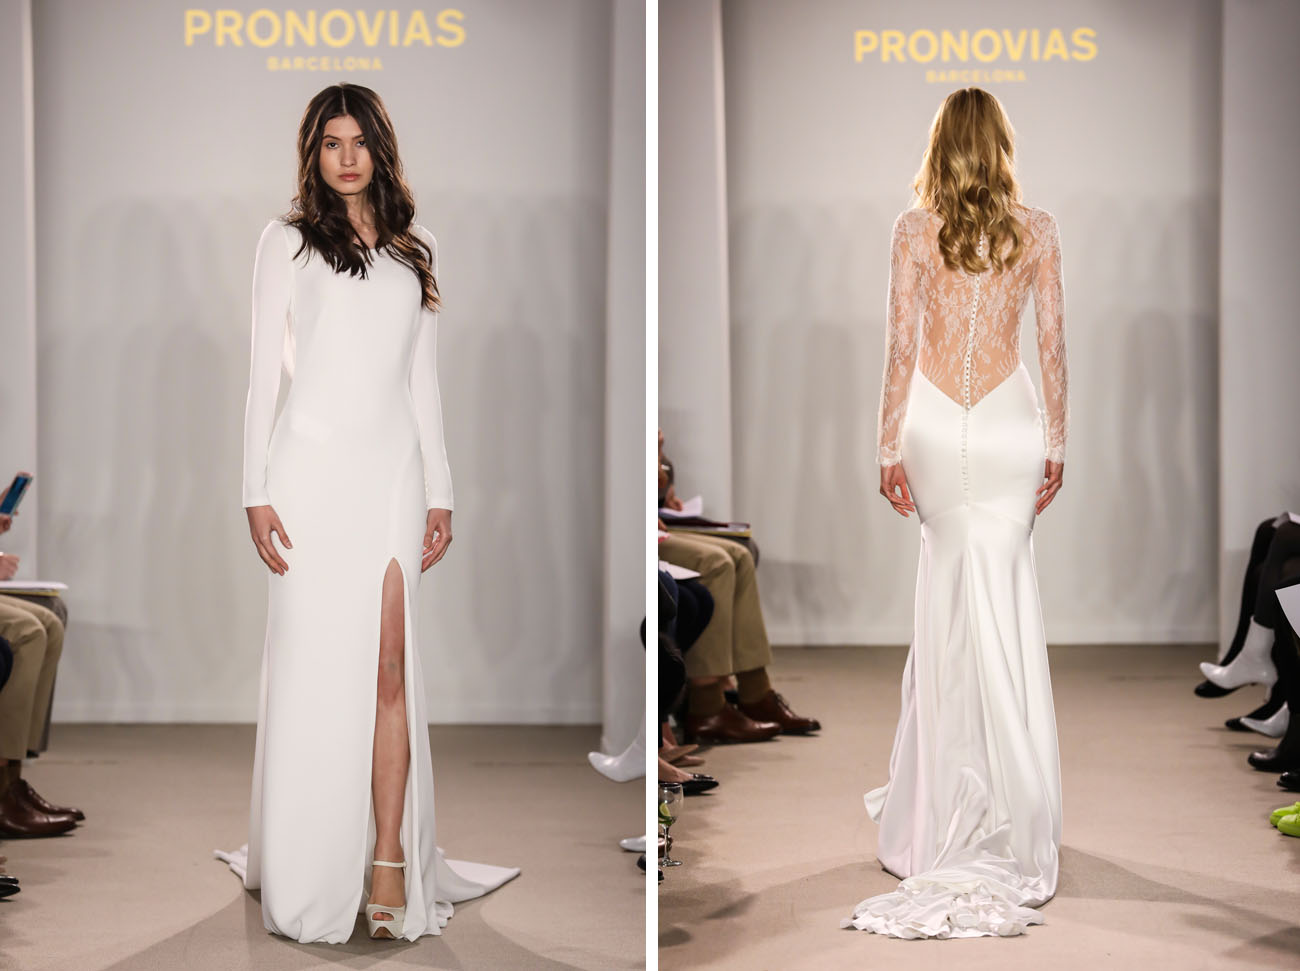 Pronovias Runway Show From Barcelona Bridal Week 2018: Pronovias Presents The Stunning 2018 Preview Collections